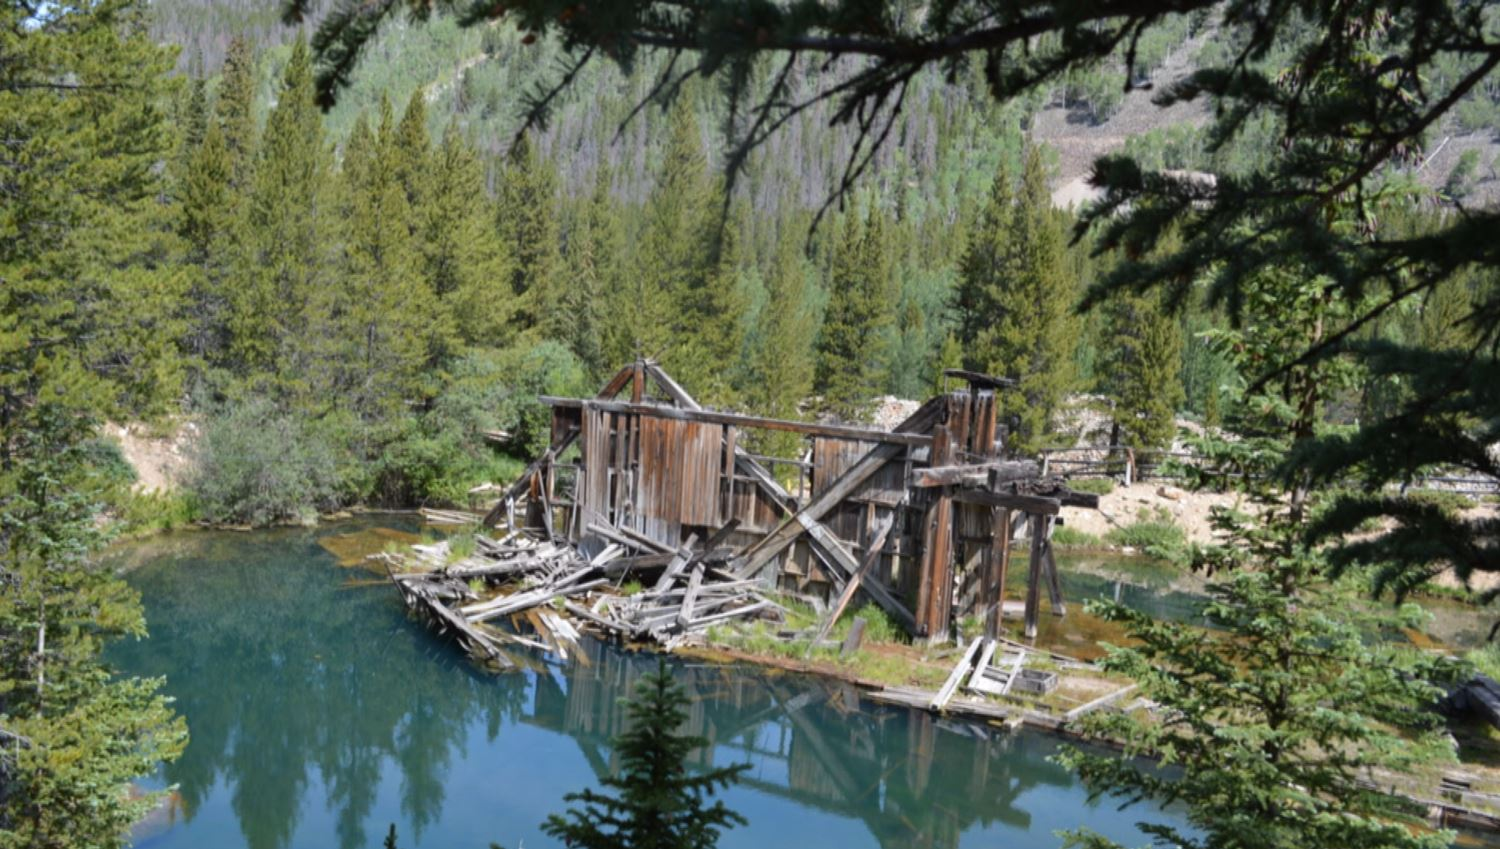 Today, the Reiling Dredge still sits in a small pond of its own creation, showing the effects of time and nature. (credit: Breckenridge Heritage Alliance)